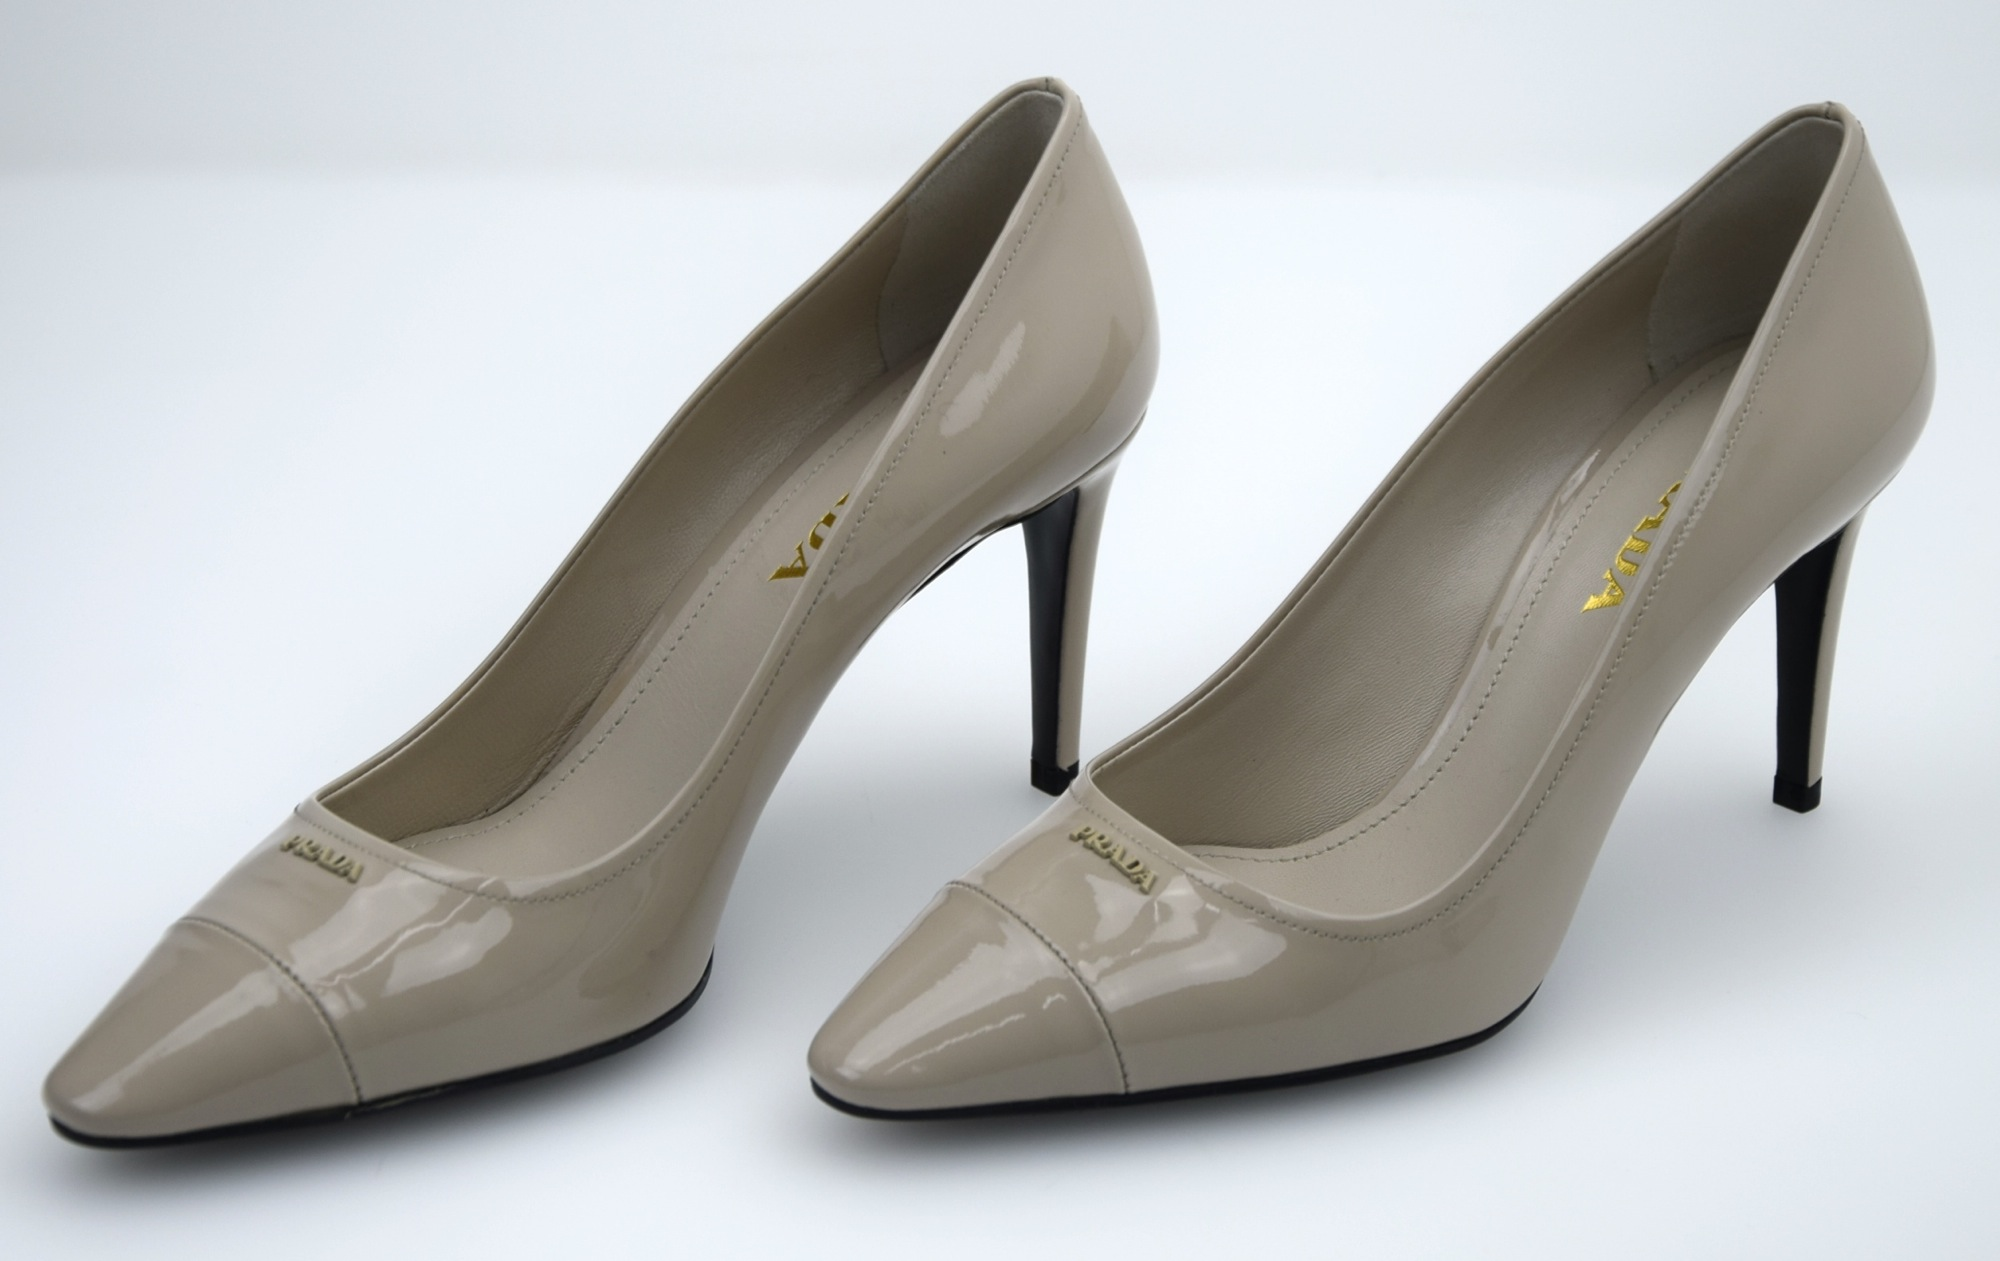 PRADA ART. DAMEN HIGH HEELS PUMPS FREIZEITSCHUHE LACK STILETTO ABSATZ ART. PRADA 1I699F aa6d1b